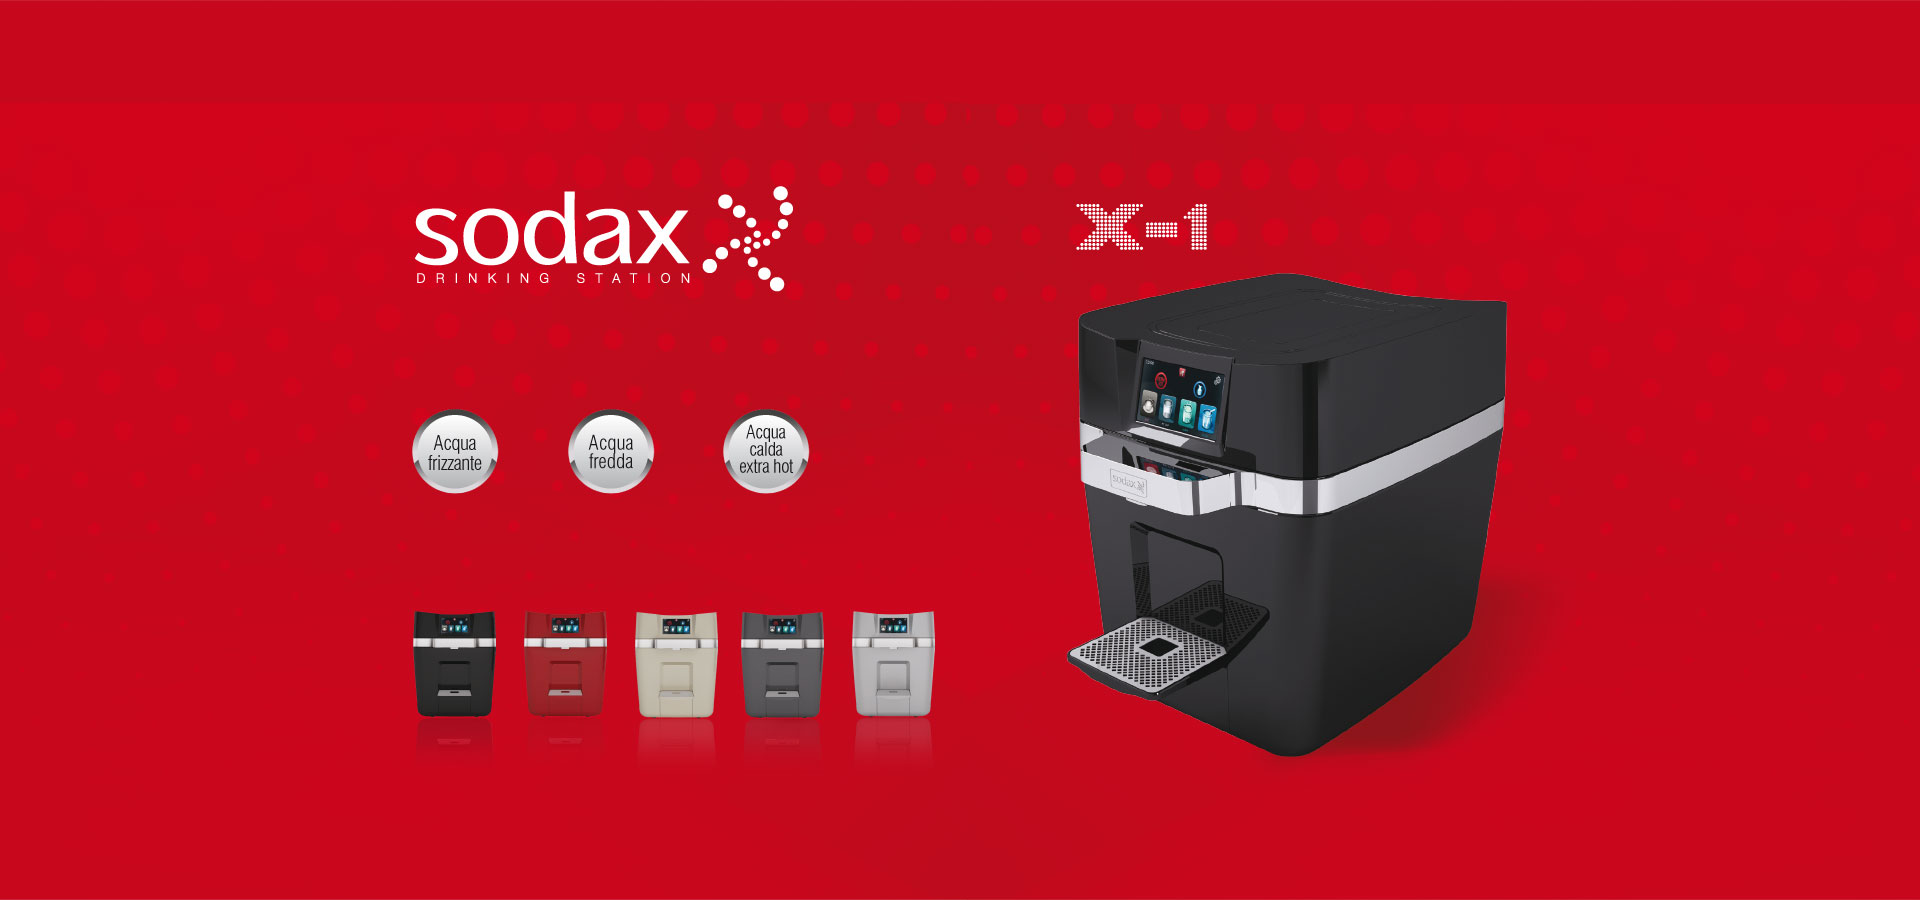 sodax drinking station